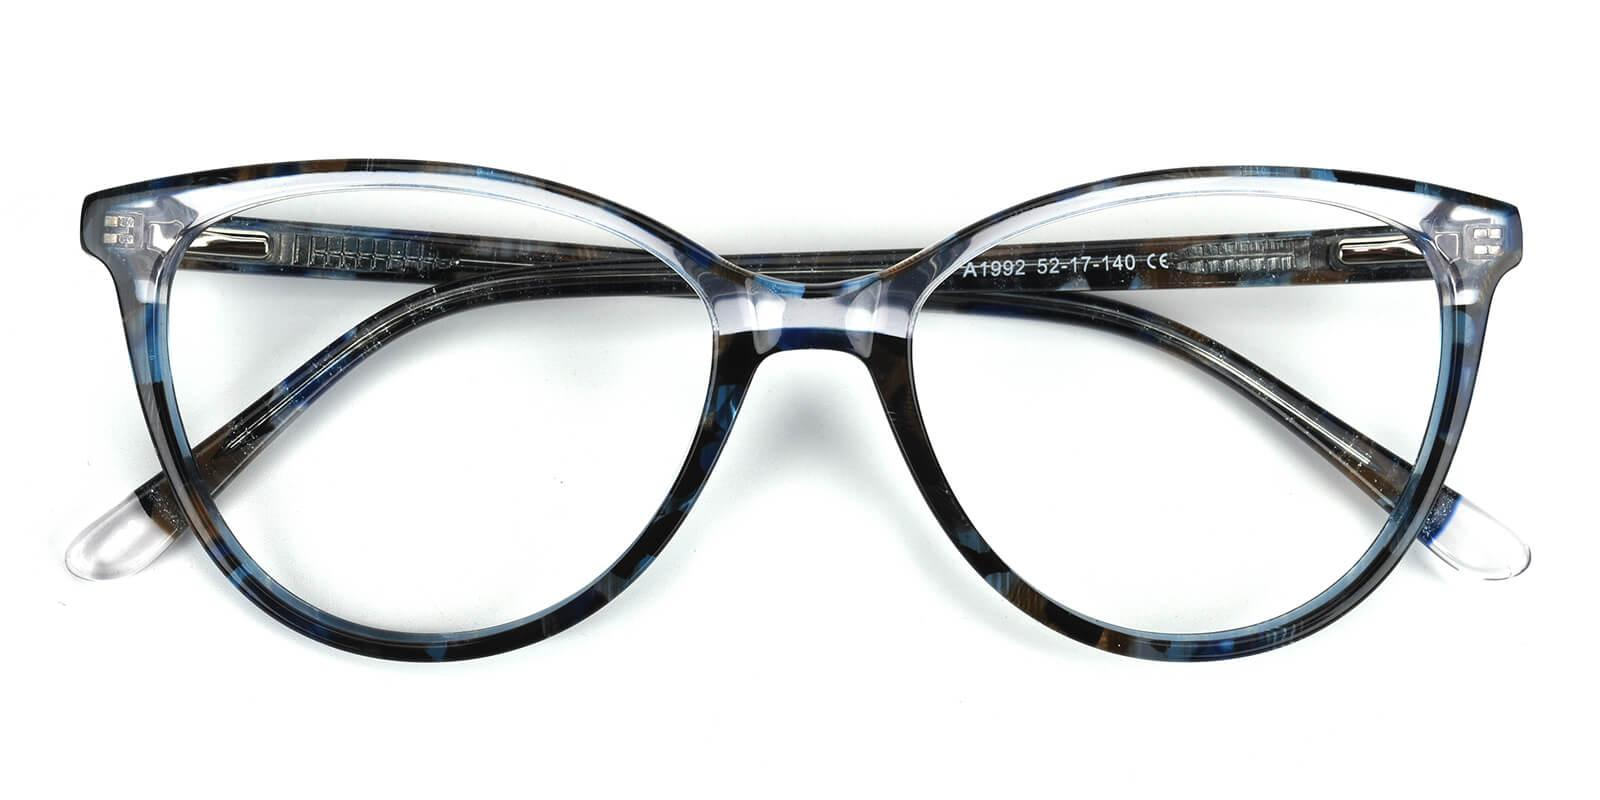 Galaxy-Multicolor-Cat-Acetate-Eyeglasses-detail